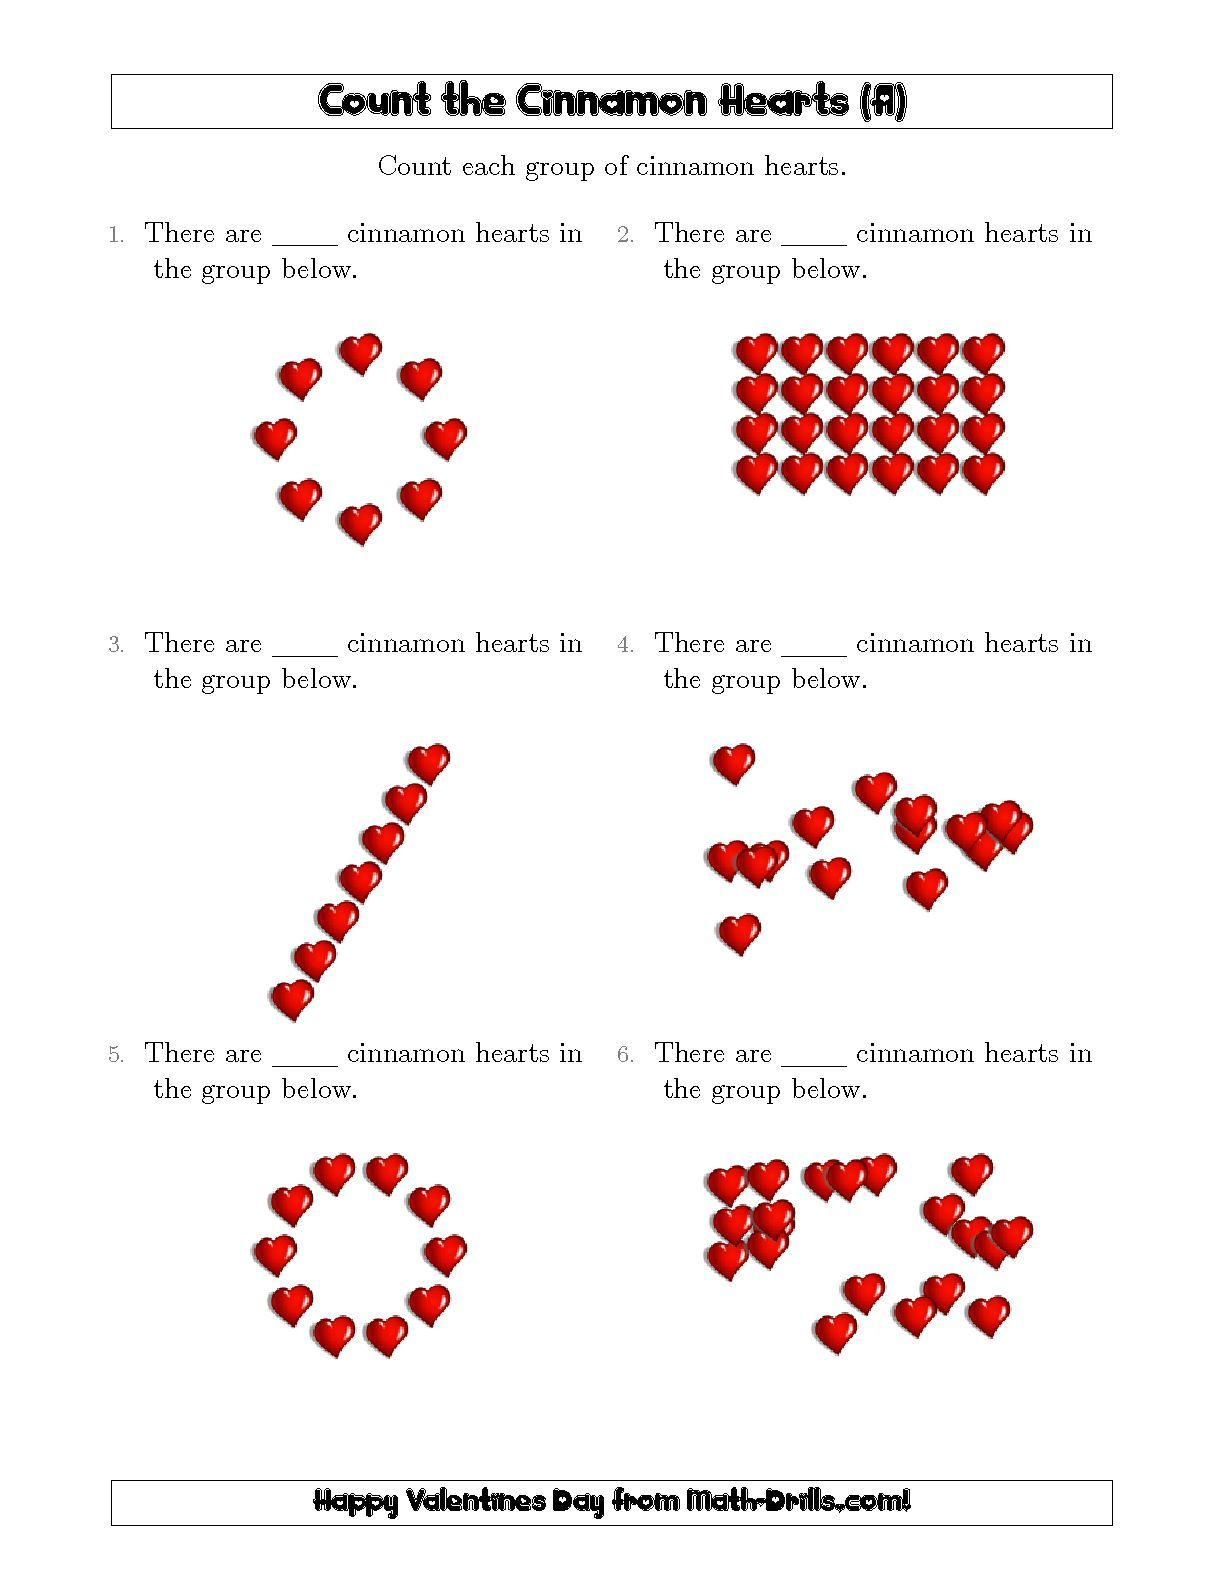 New Counting Cinnamon Hearts In Various Arrangements A Math Worksheet Freemath